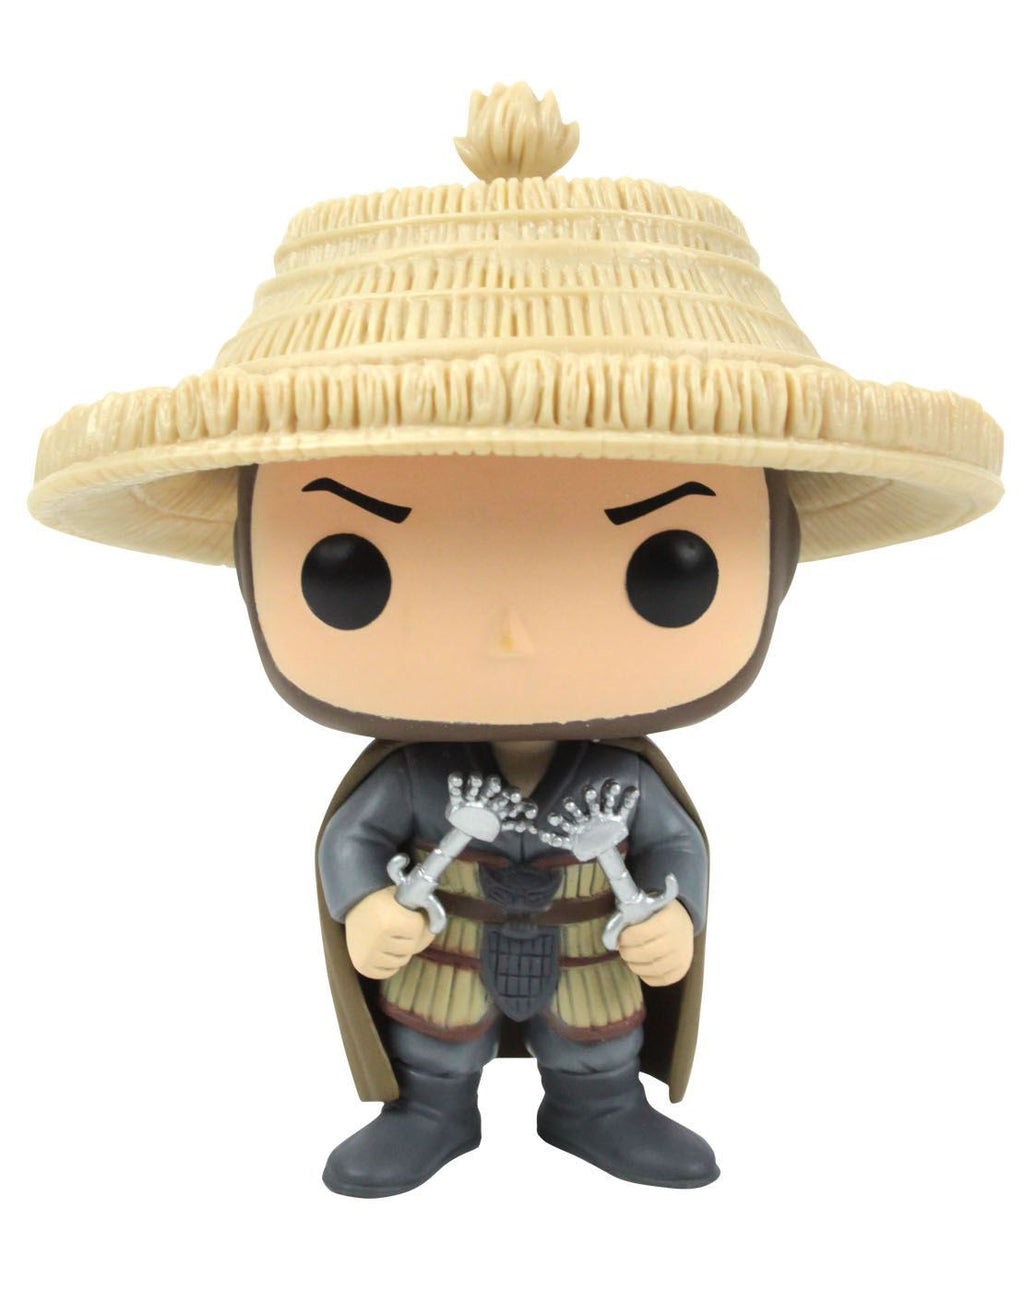 Funko Pop! Big Trouble In Little China Rain Vinyl Figure